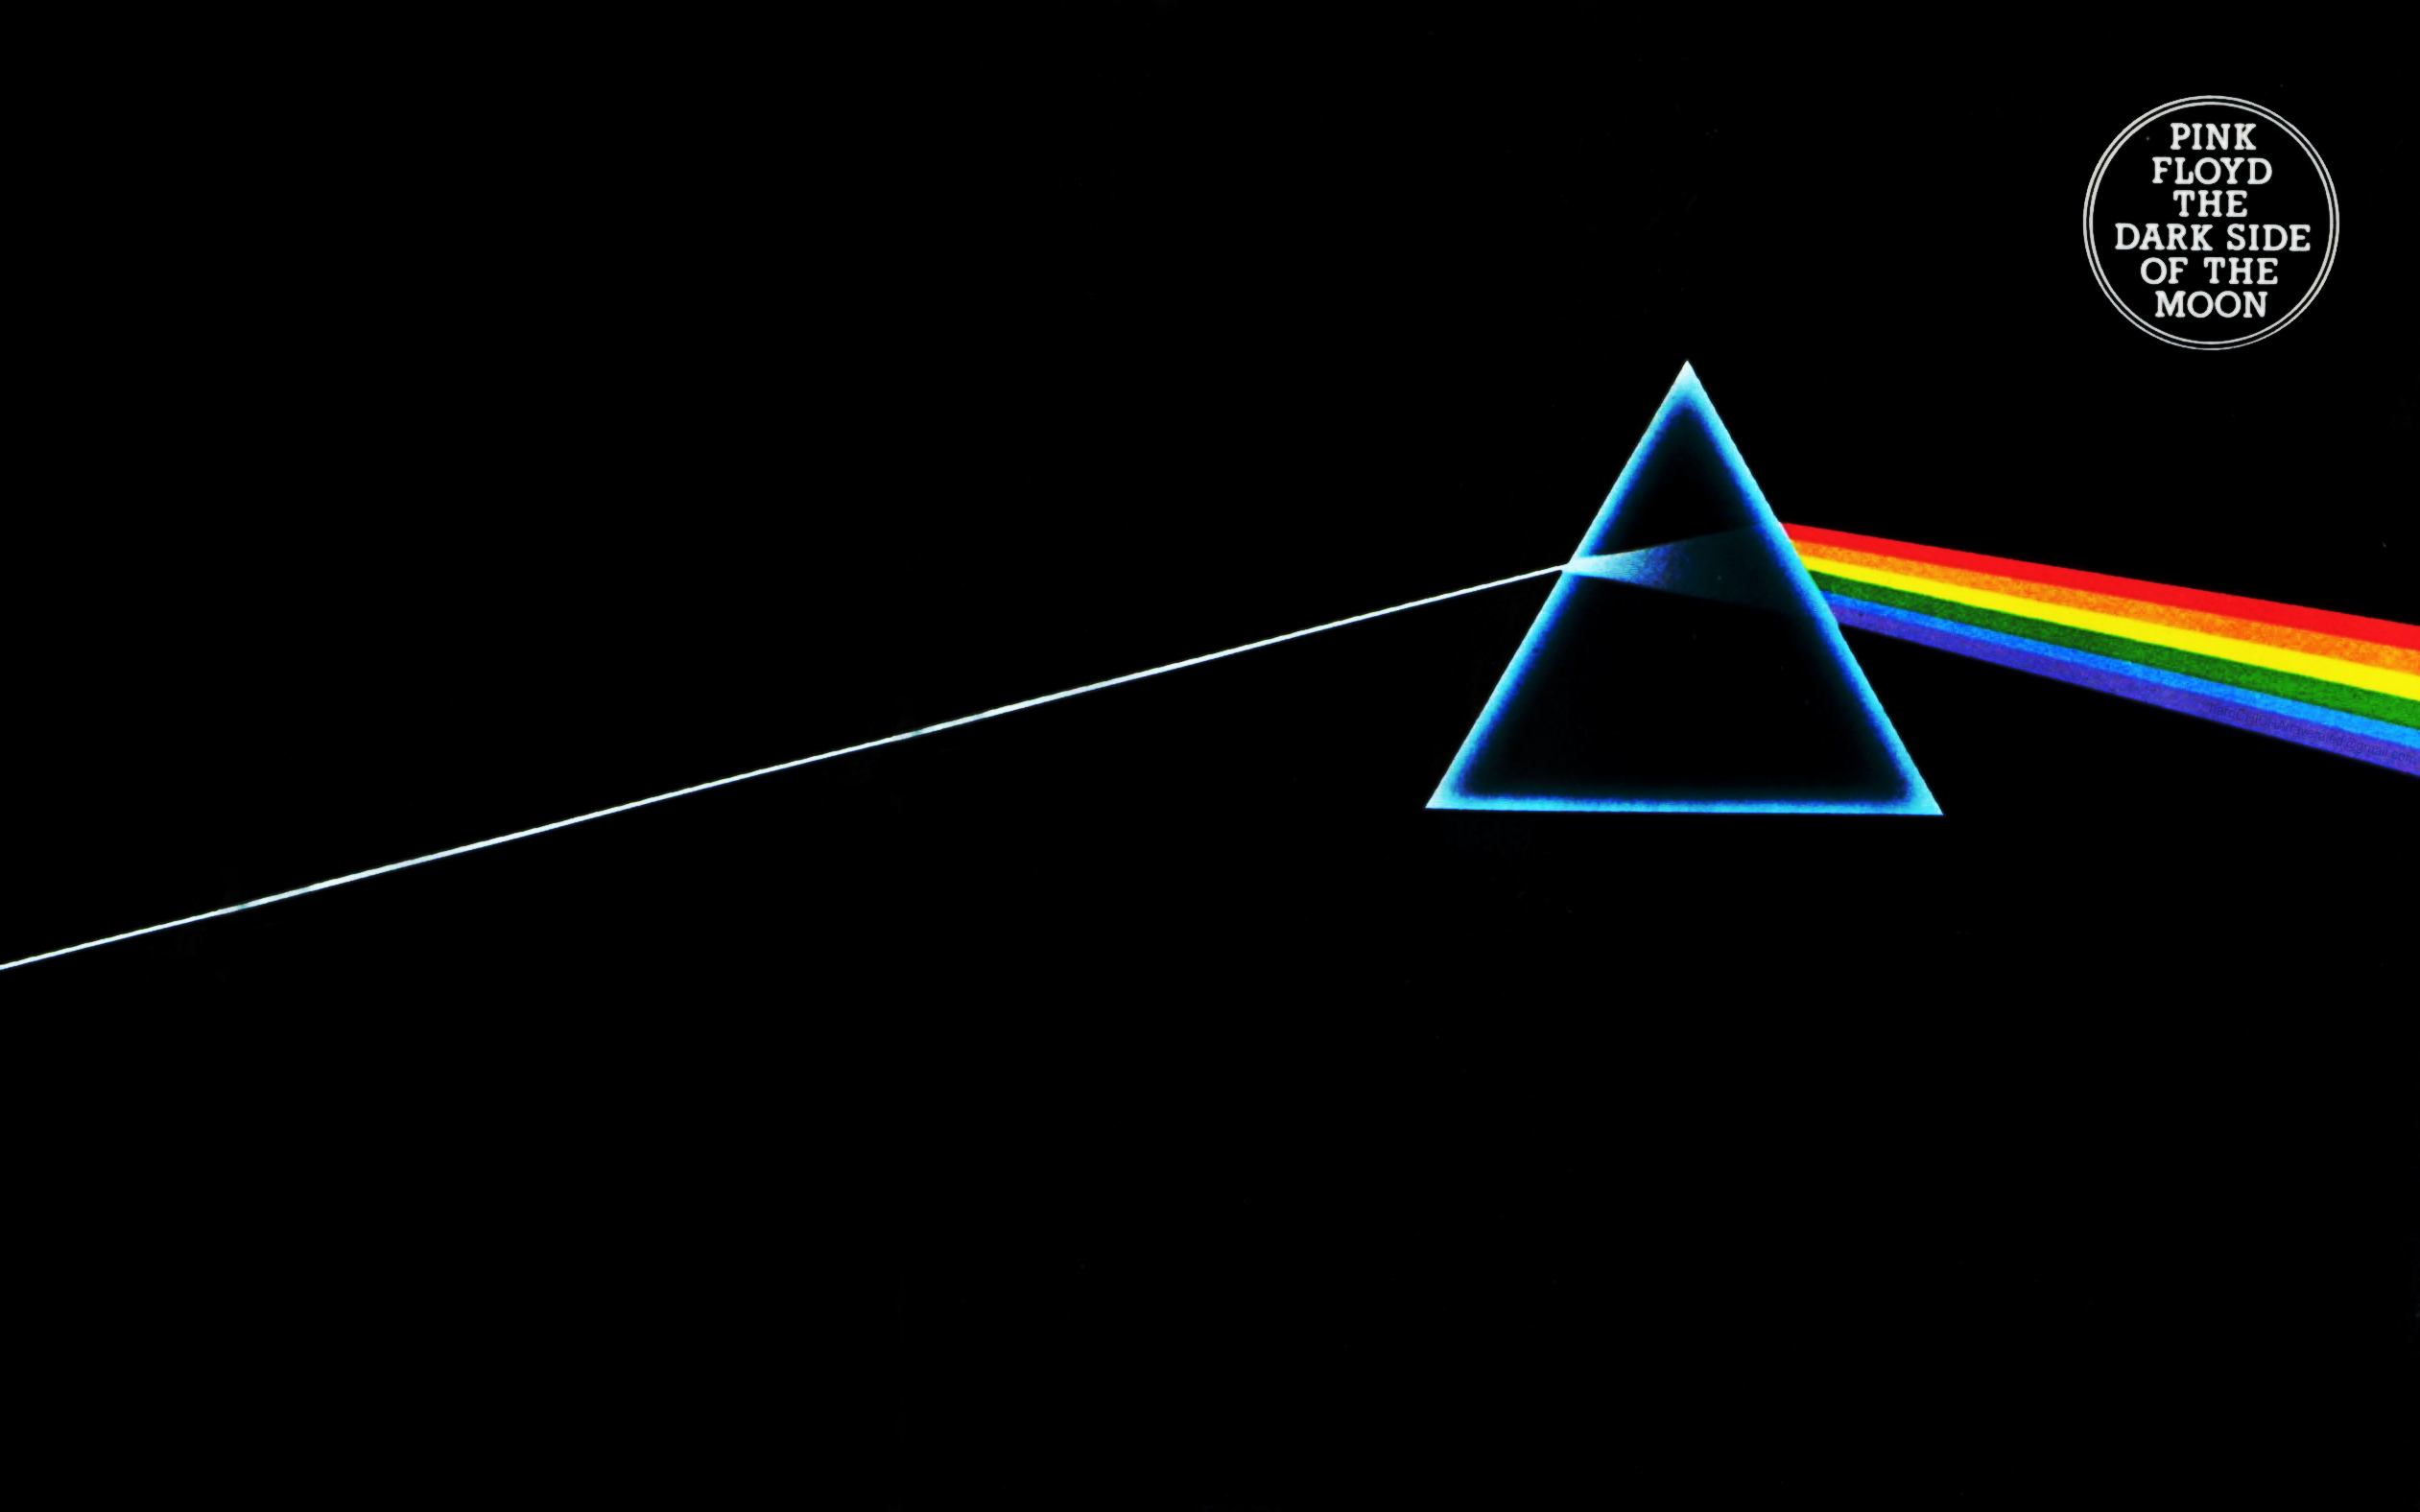 dark side of the moon 77366 1 desktop and mobile